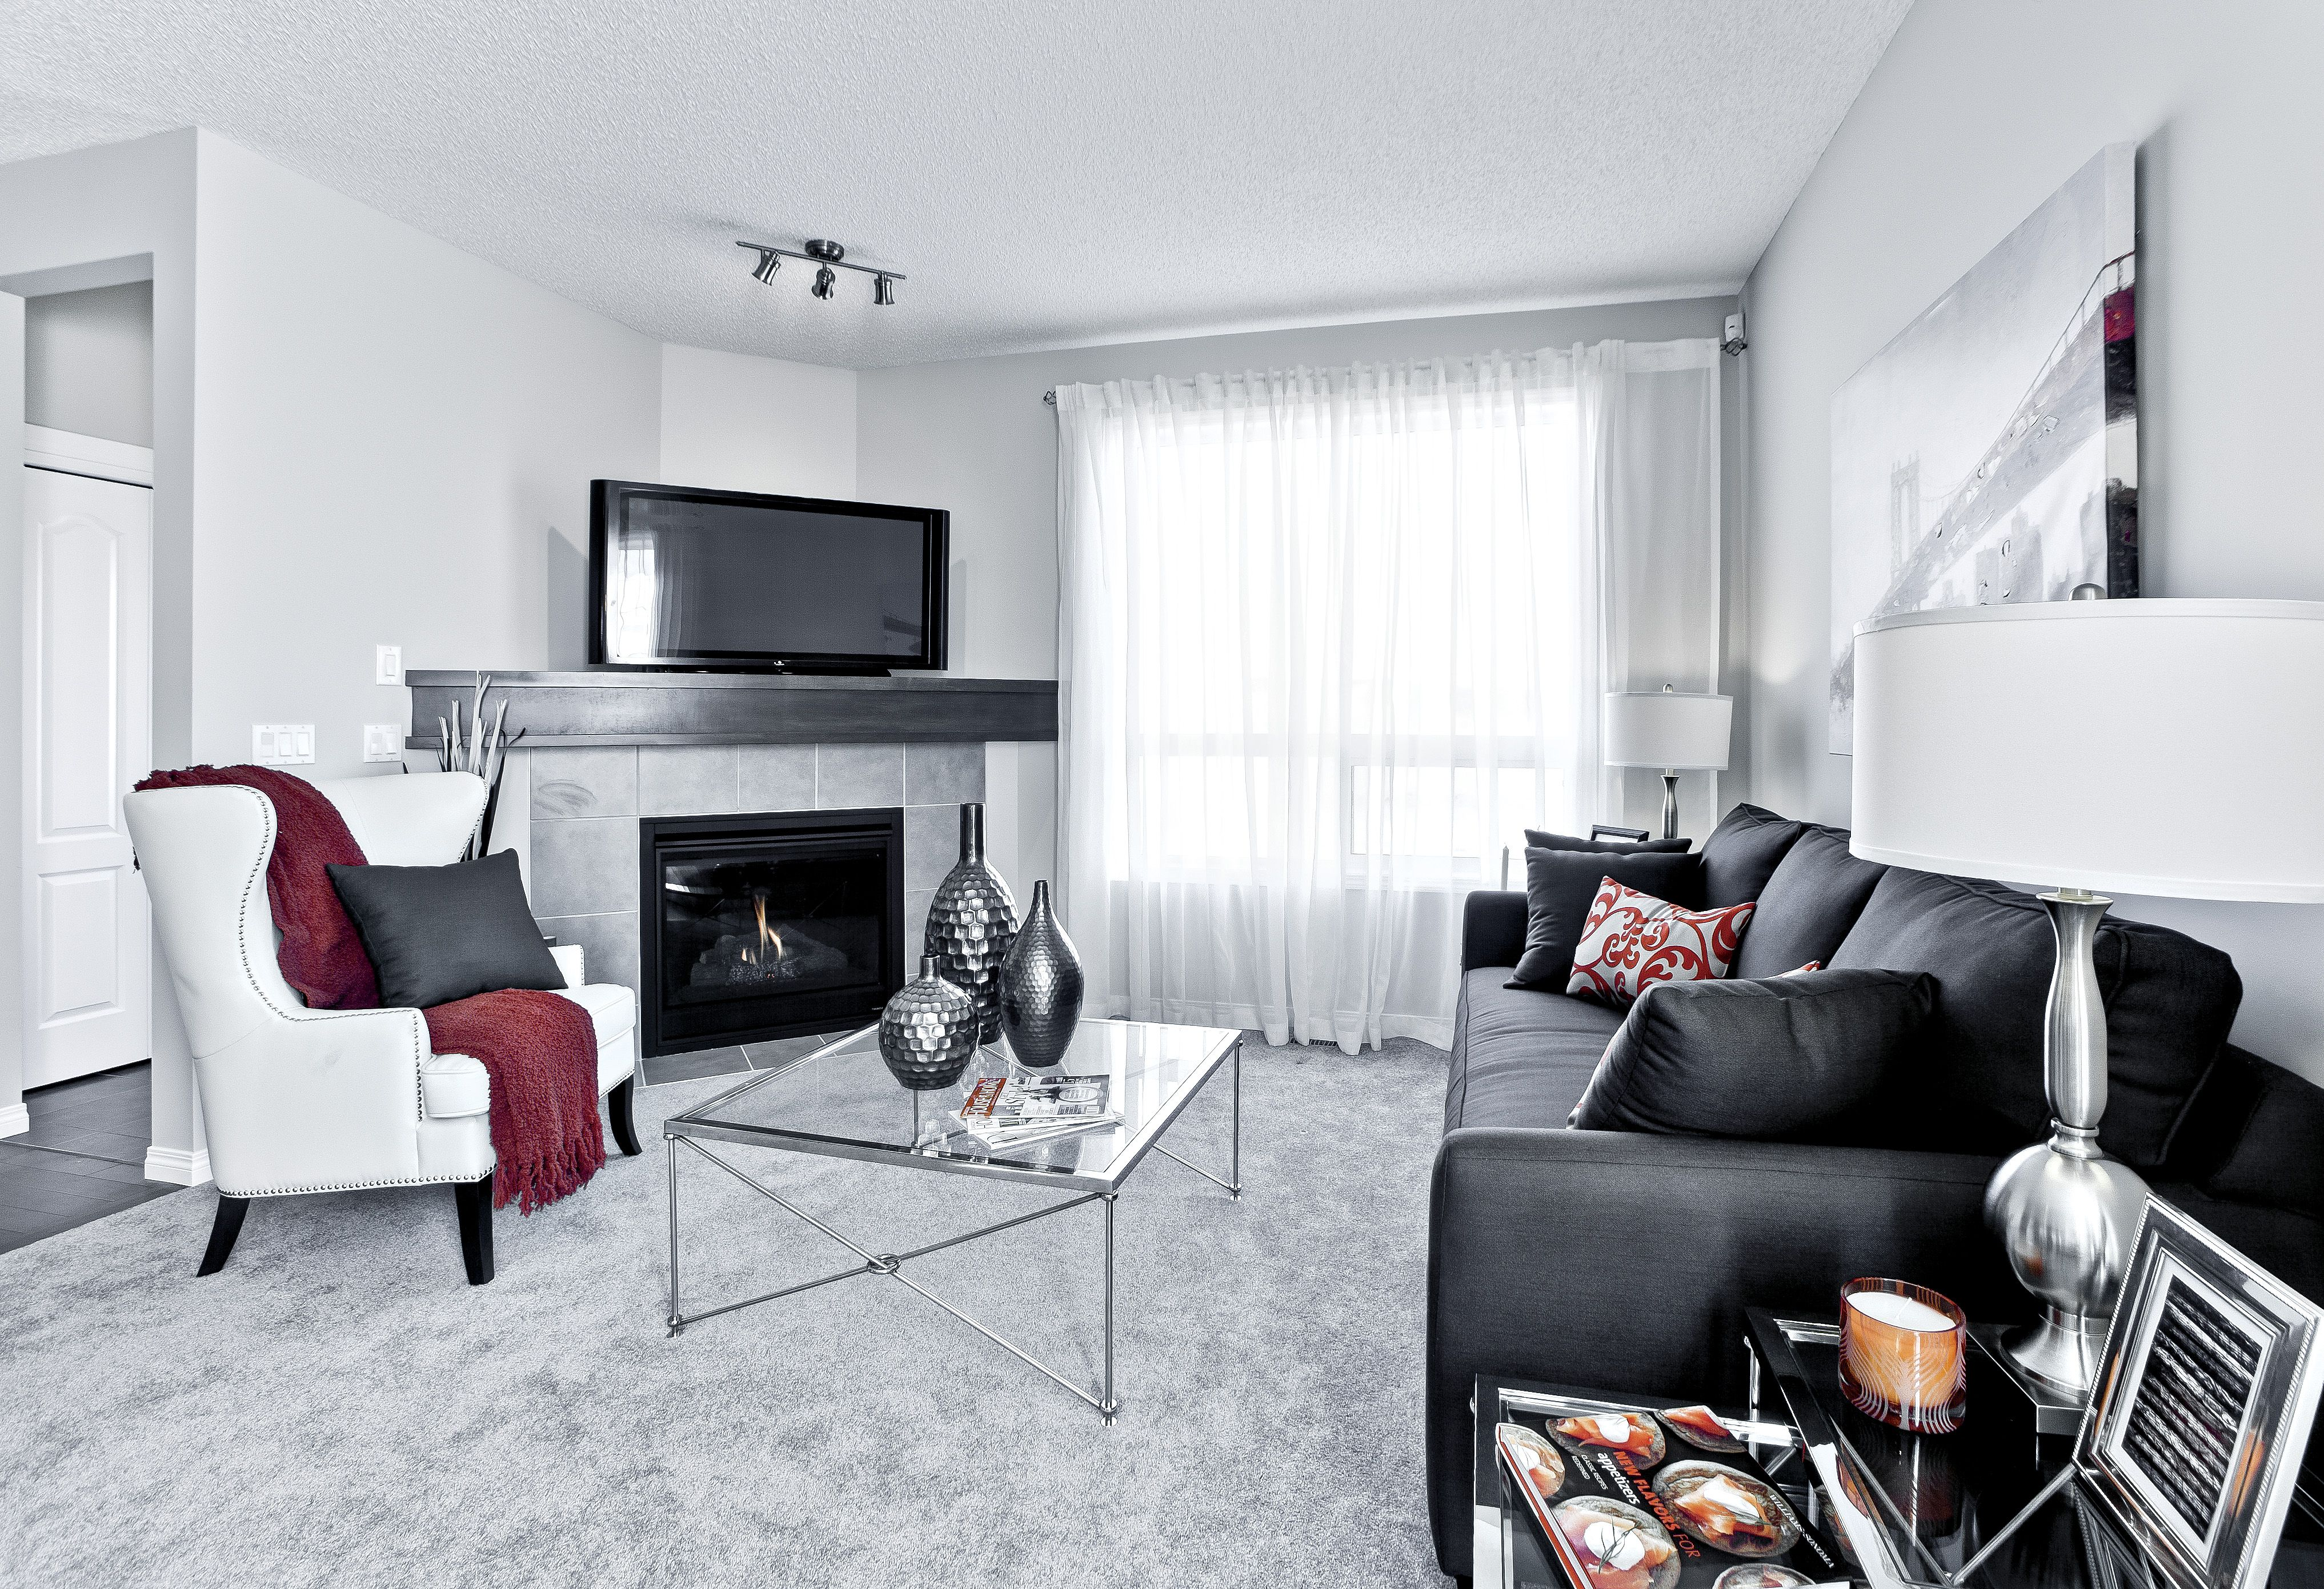 Family room / living room with corner fireplace | My future life ...